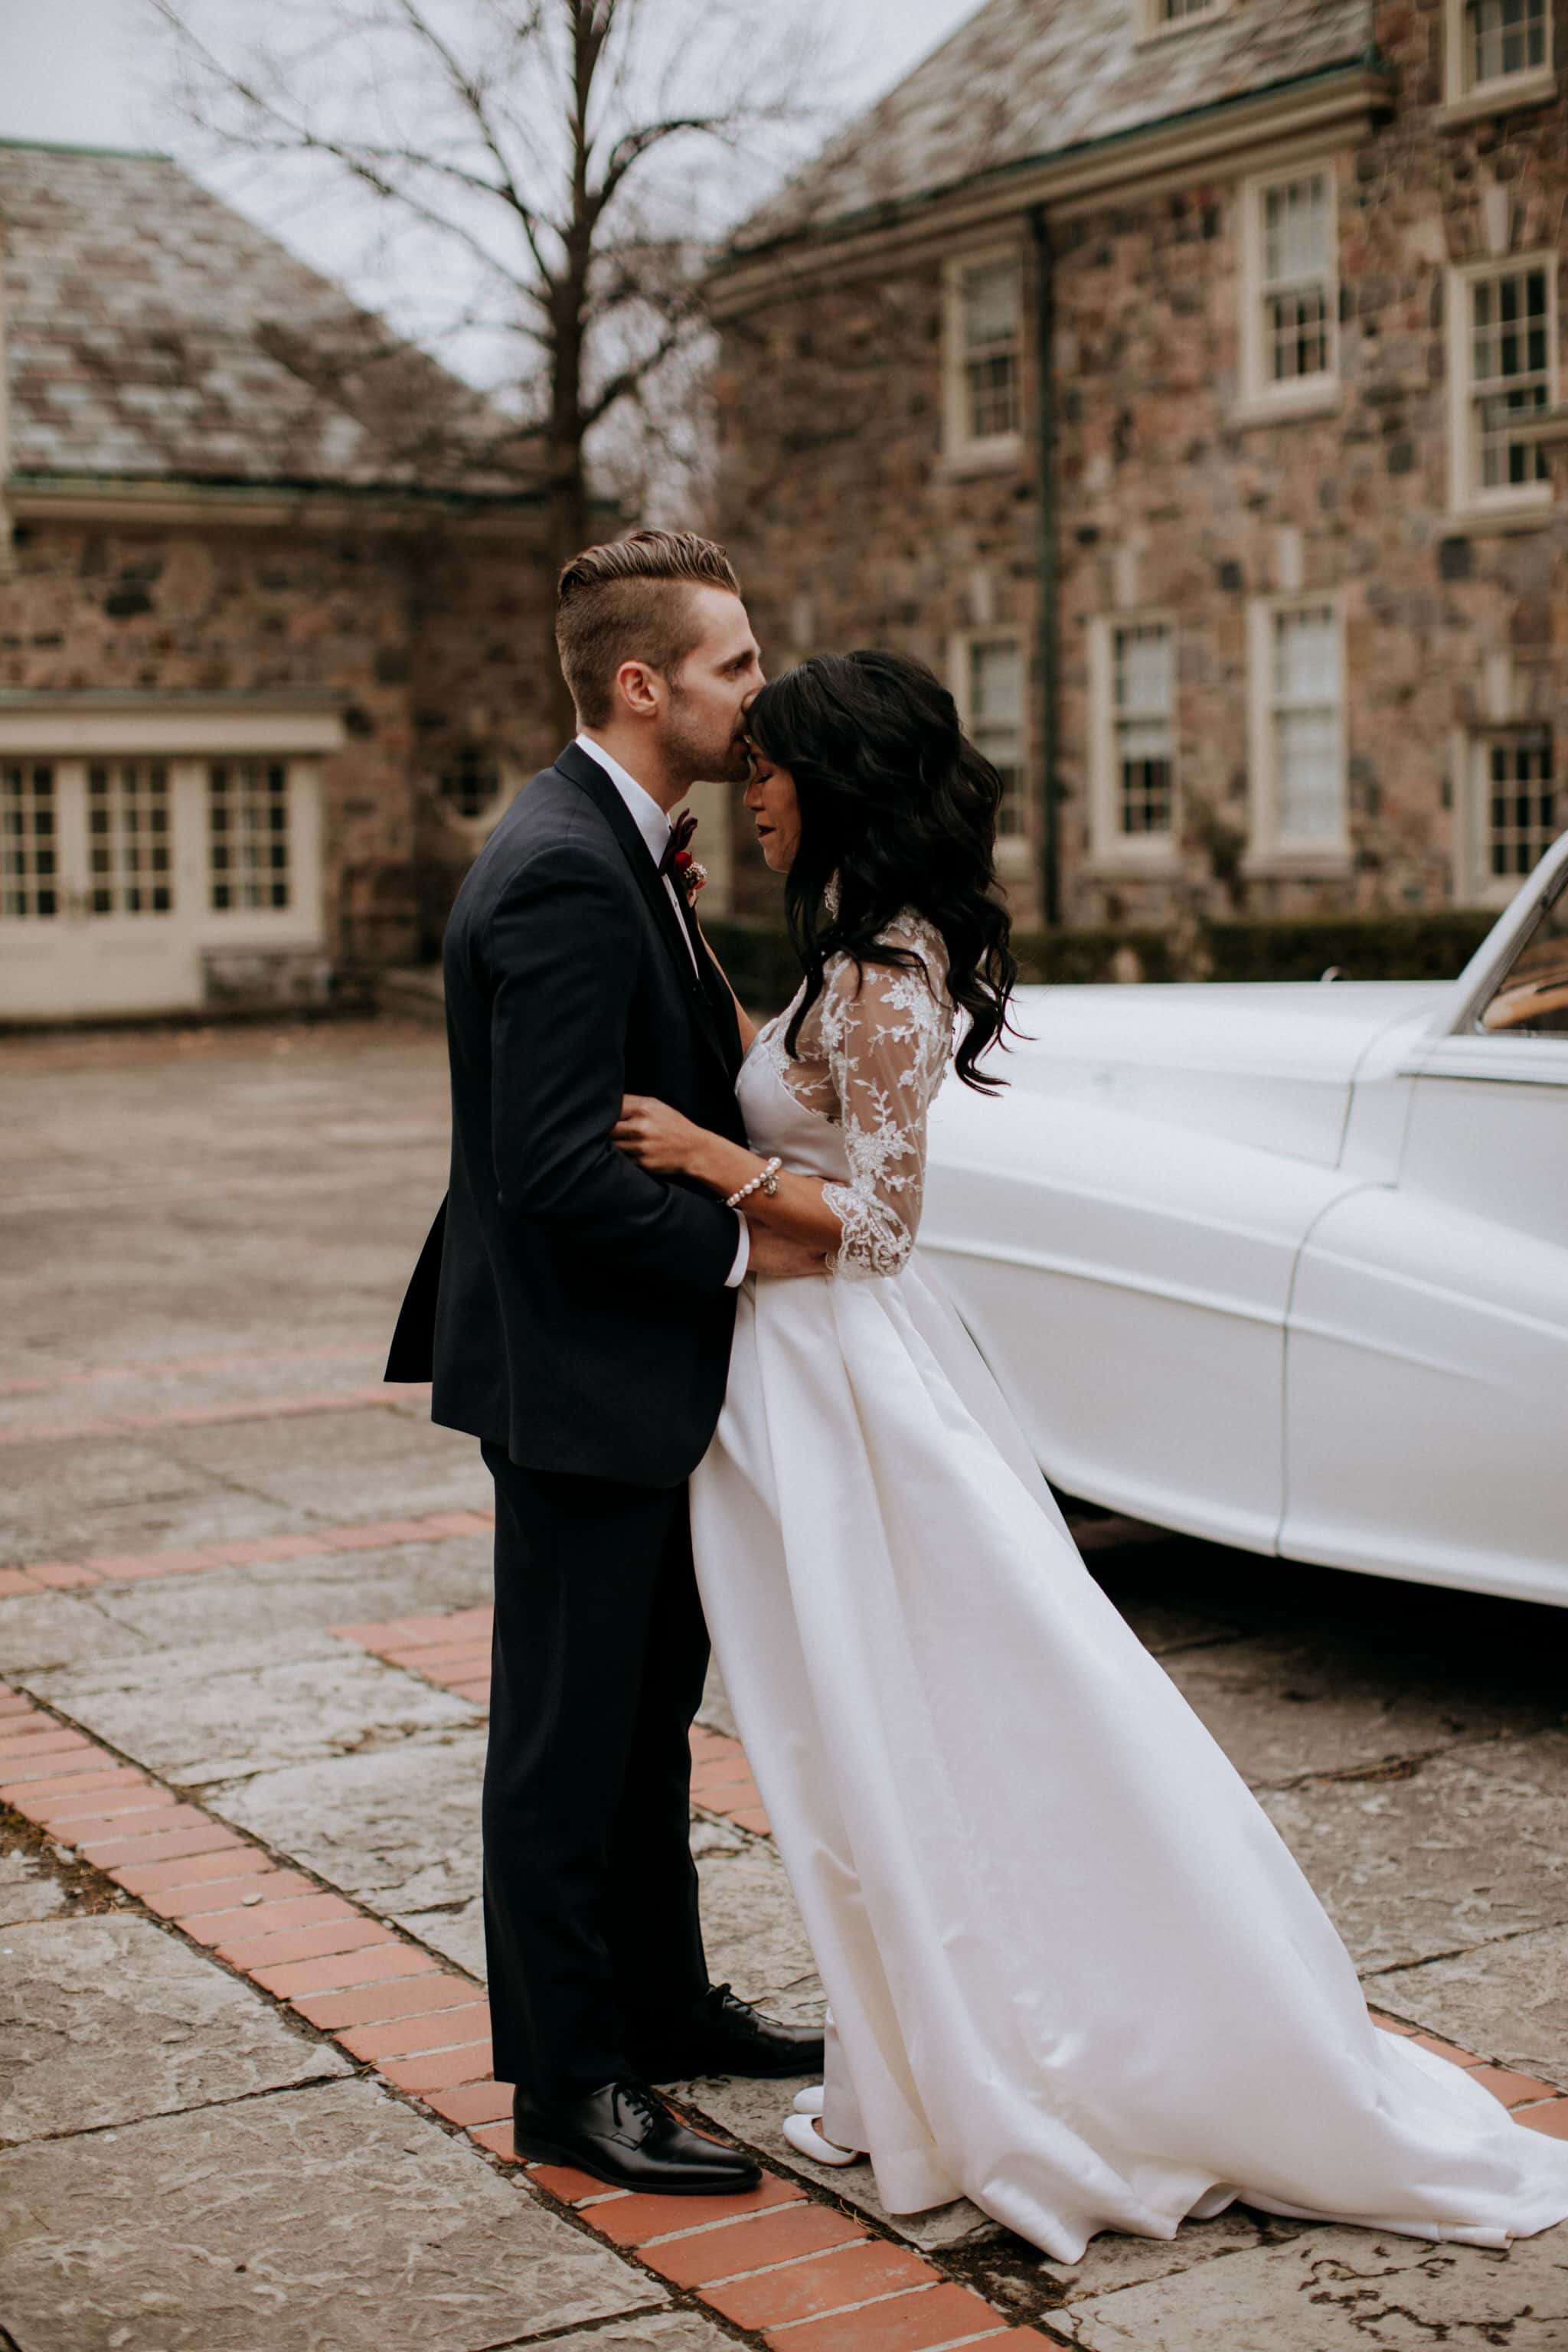 Bride and groom embrace in courtyard at Graydon Hall Manor Wedding in Toronto